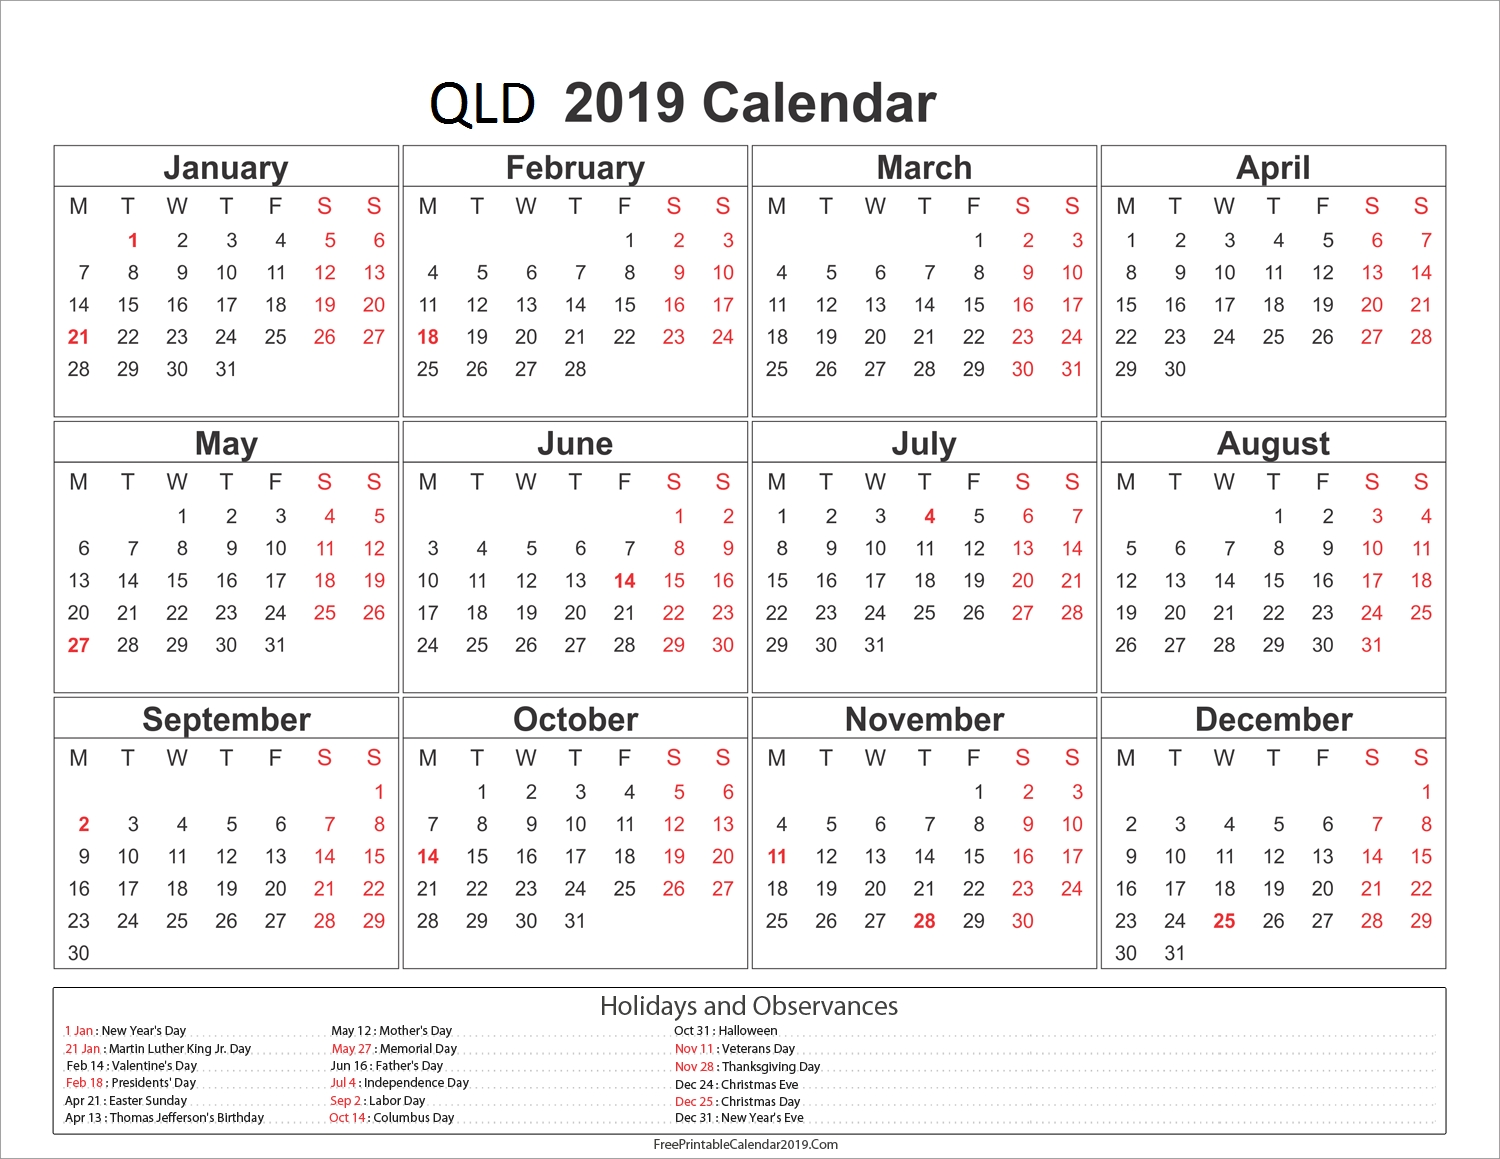 Free Download Printable Yearly Calendar 2019 Template With Qld 2019 Calendar Qld Printable